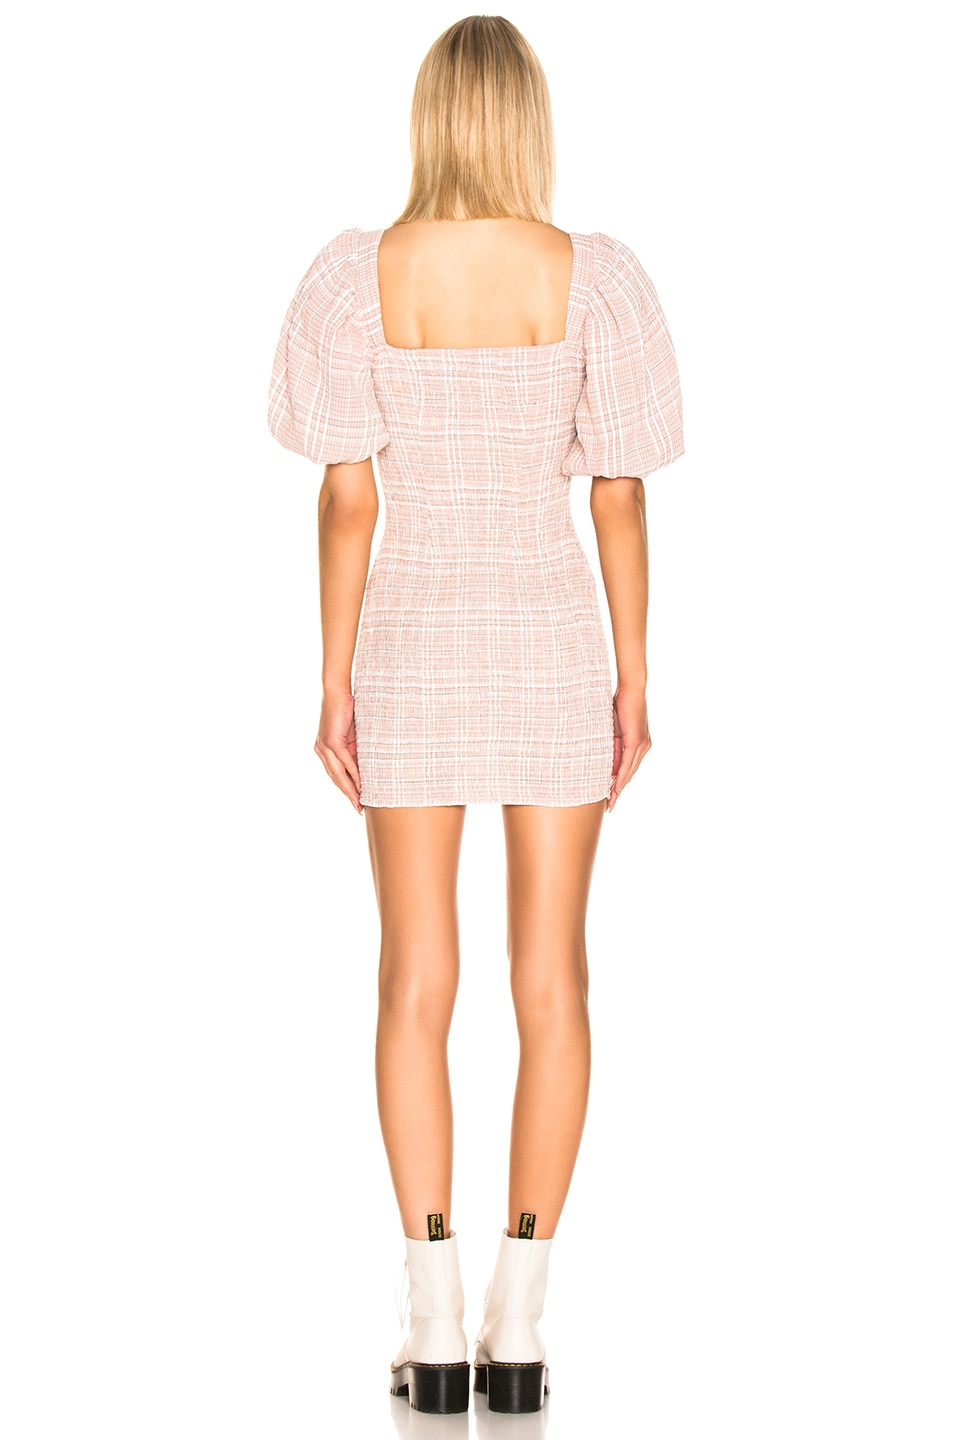 Image 3 of Atoir Fool To Love Dress in Pink Check